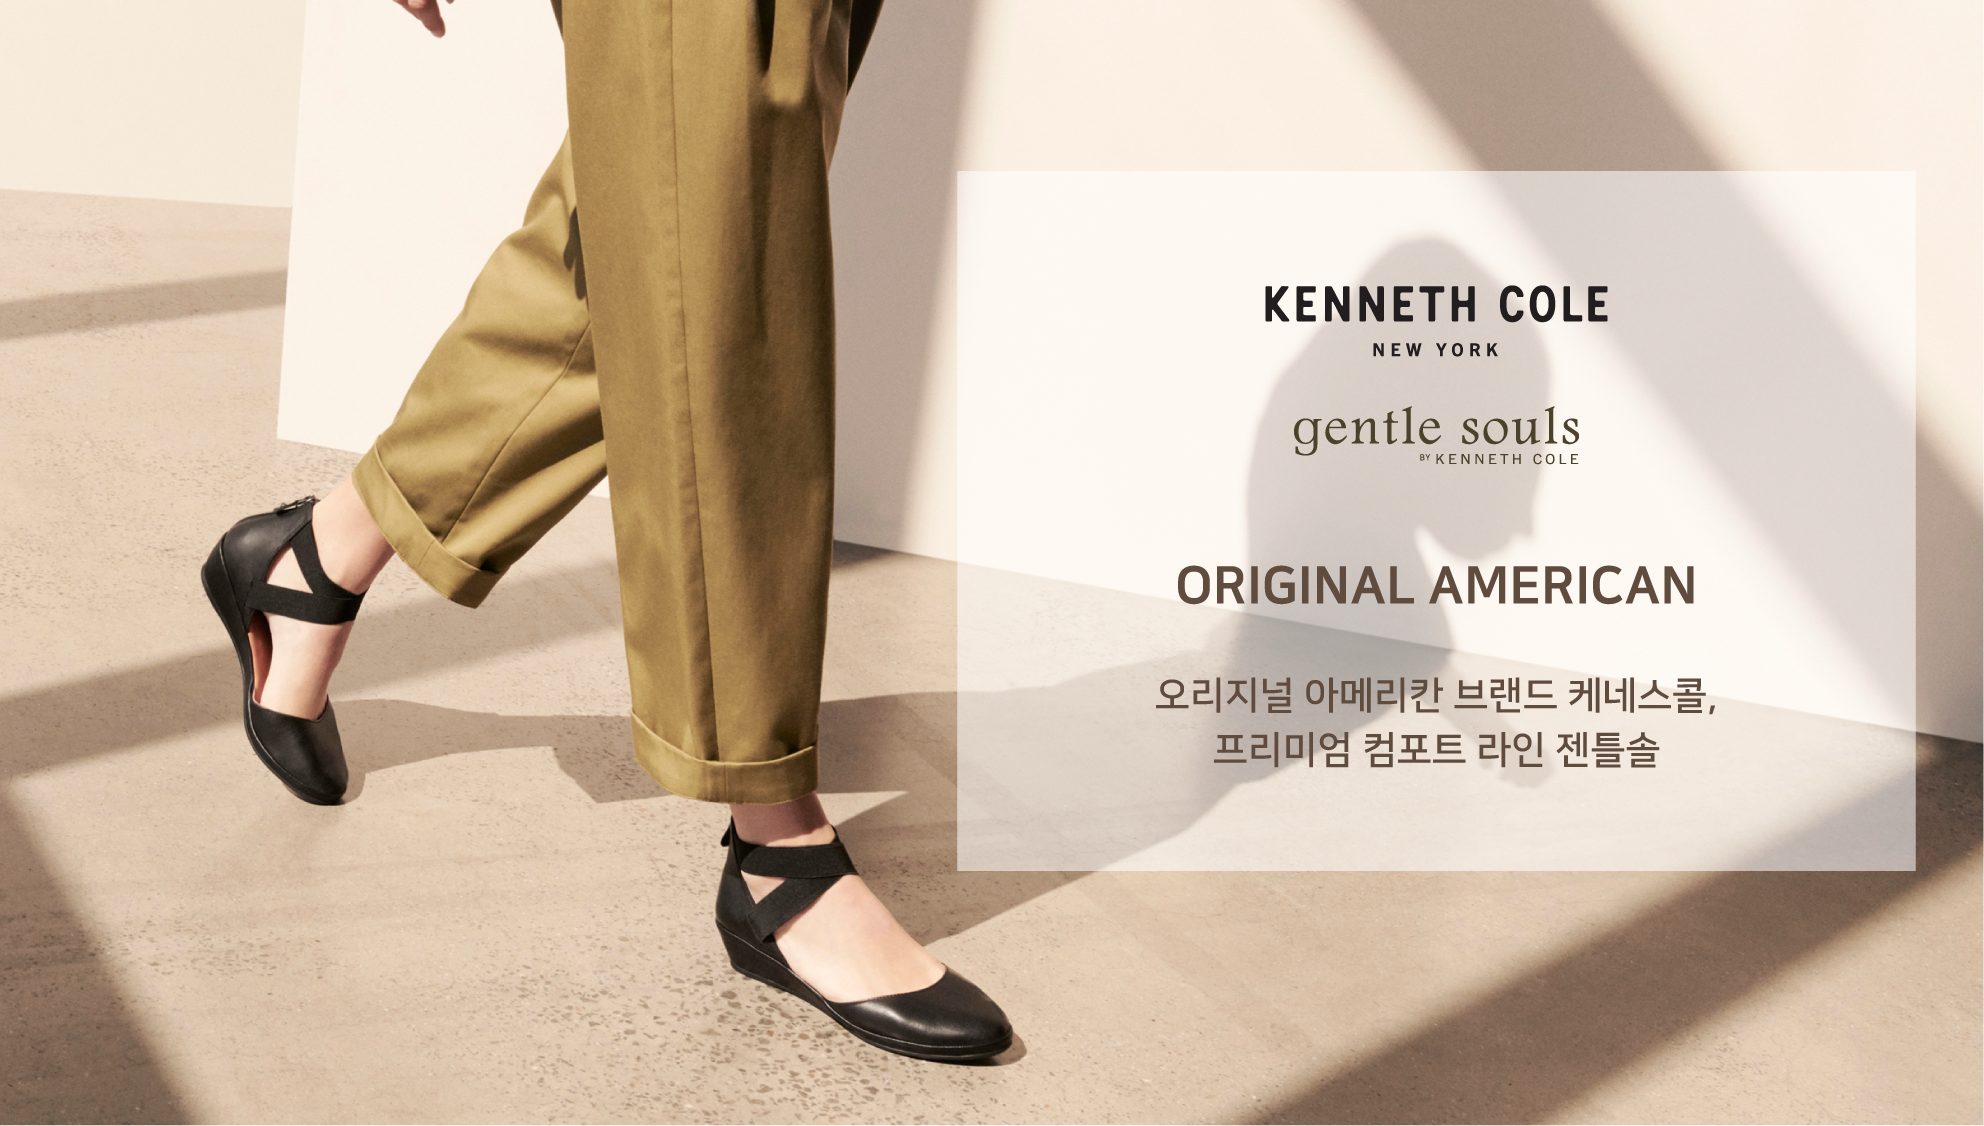 KENNETH COLE / GENTLE SOUL